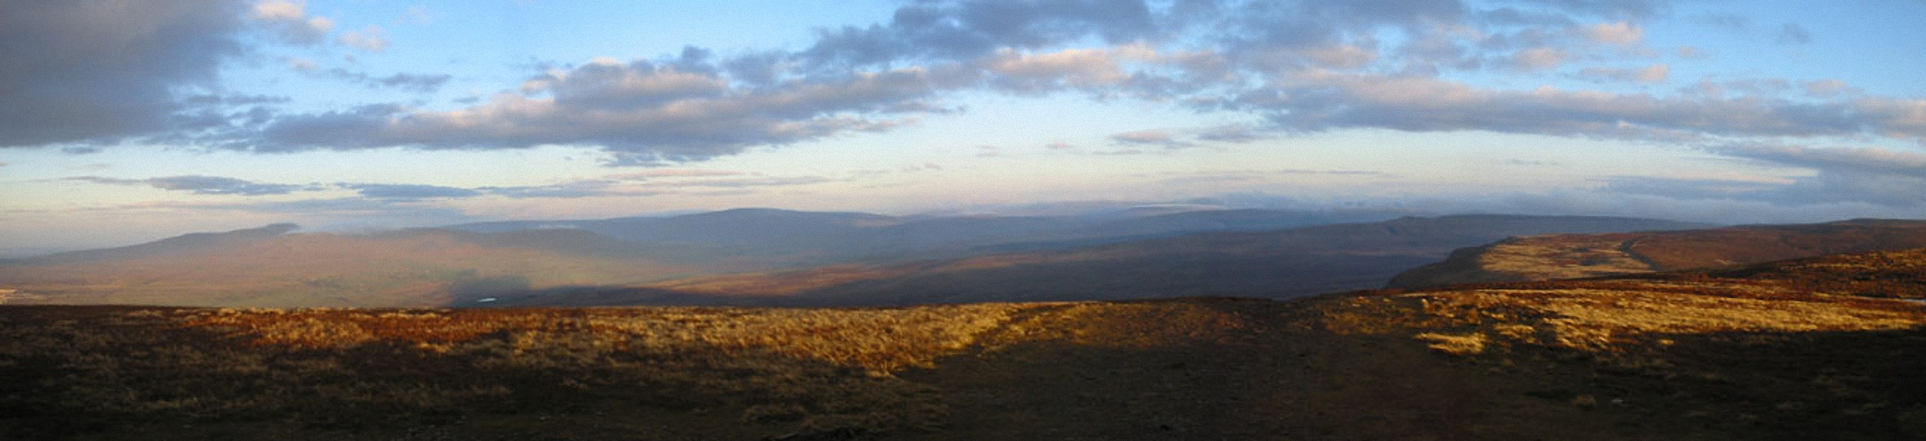 Ingleborough and Whernside from Pen-y-ghent in the early morning light